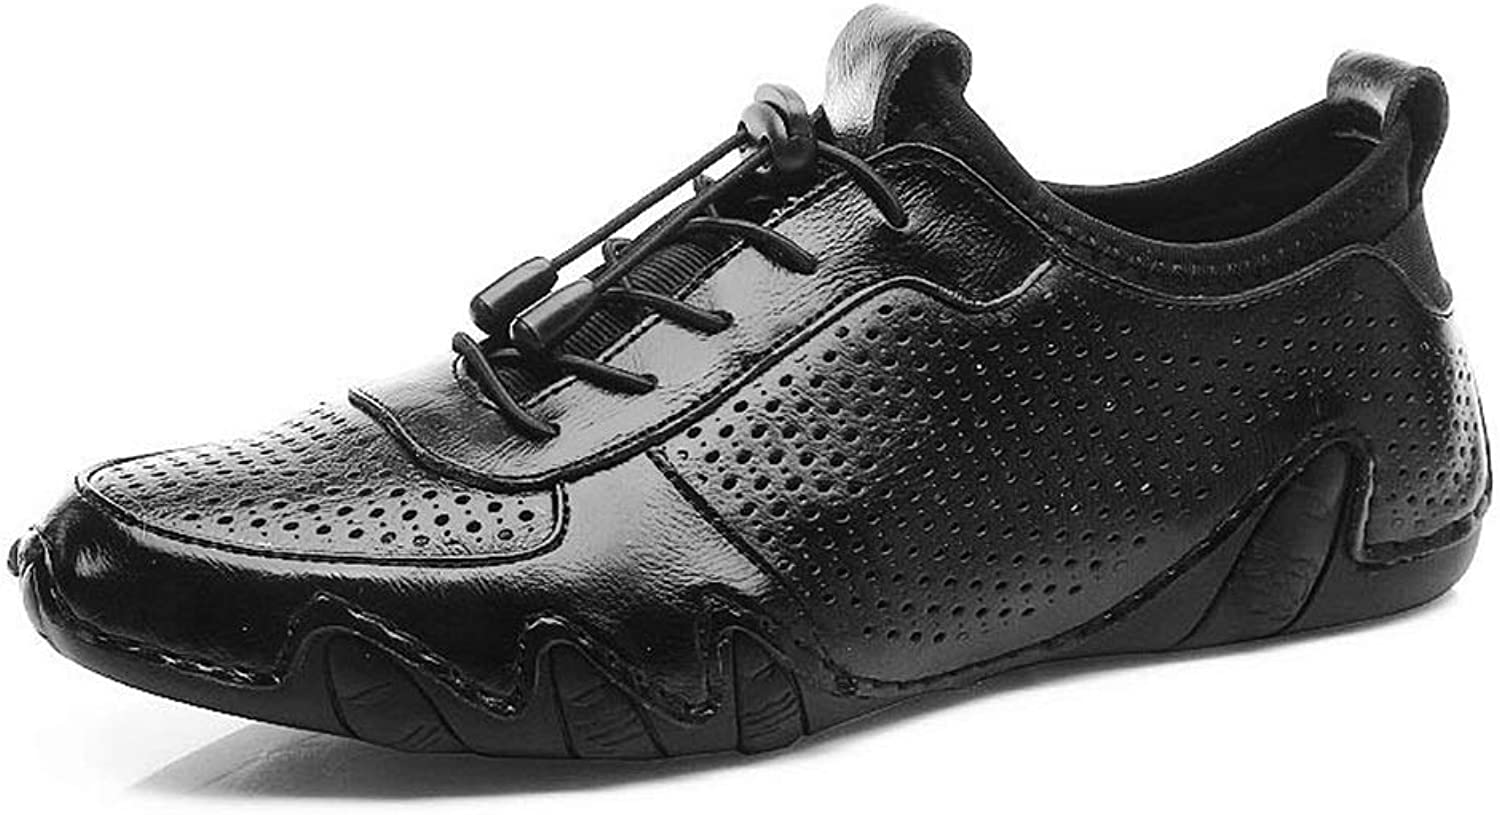 Easy Go Shopping Athletic shoes for Men Sports shoes Lace Up Style OX Leather Personality Breathable Hollow Vamp Cricket shoes (color   Black, Size   7 UK)